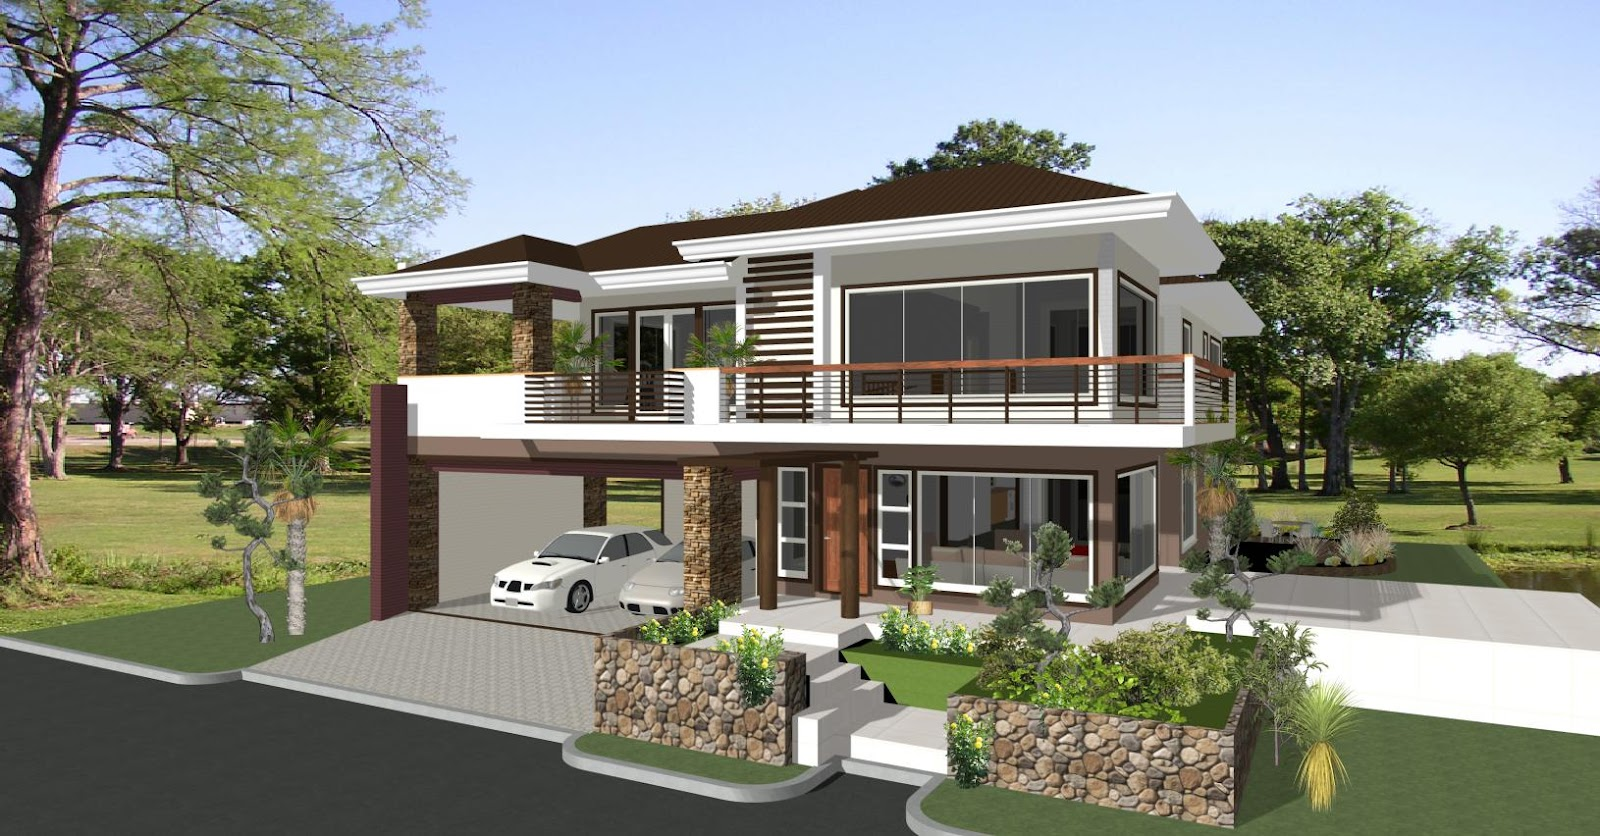 Architecture architect home building iloilo home plans iloilo home